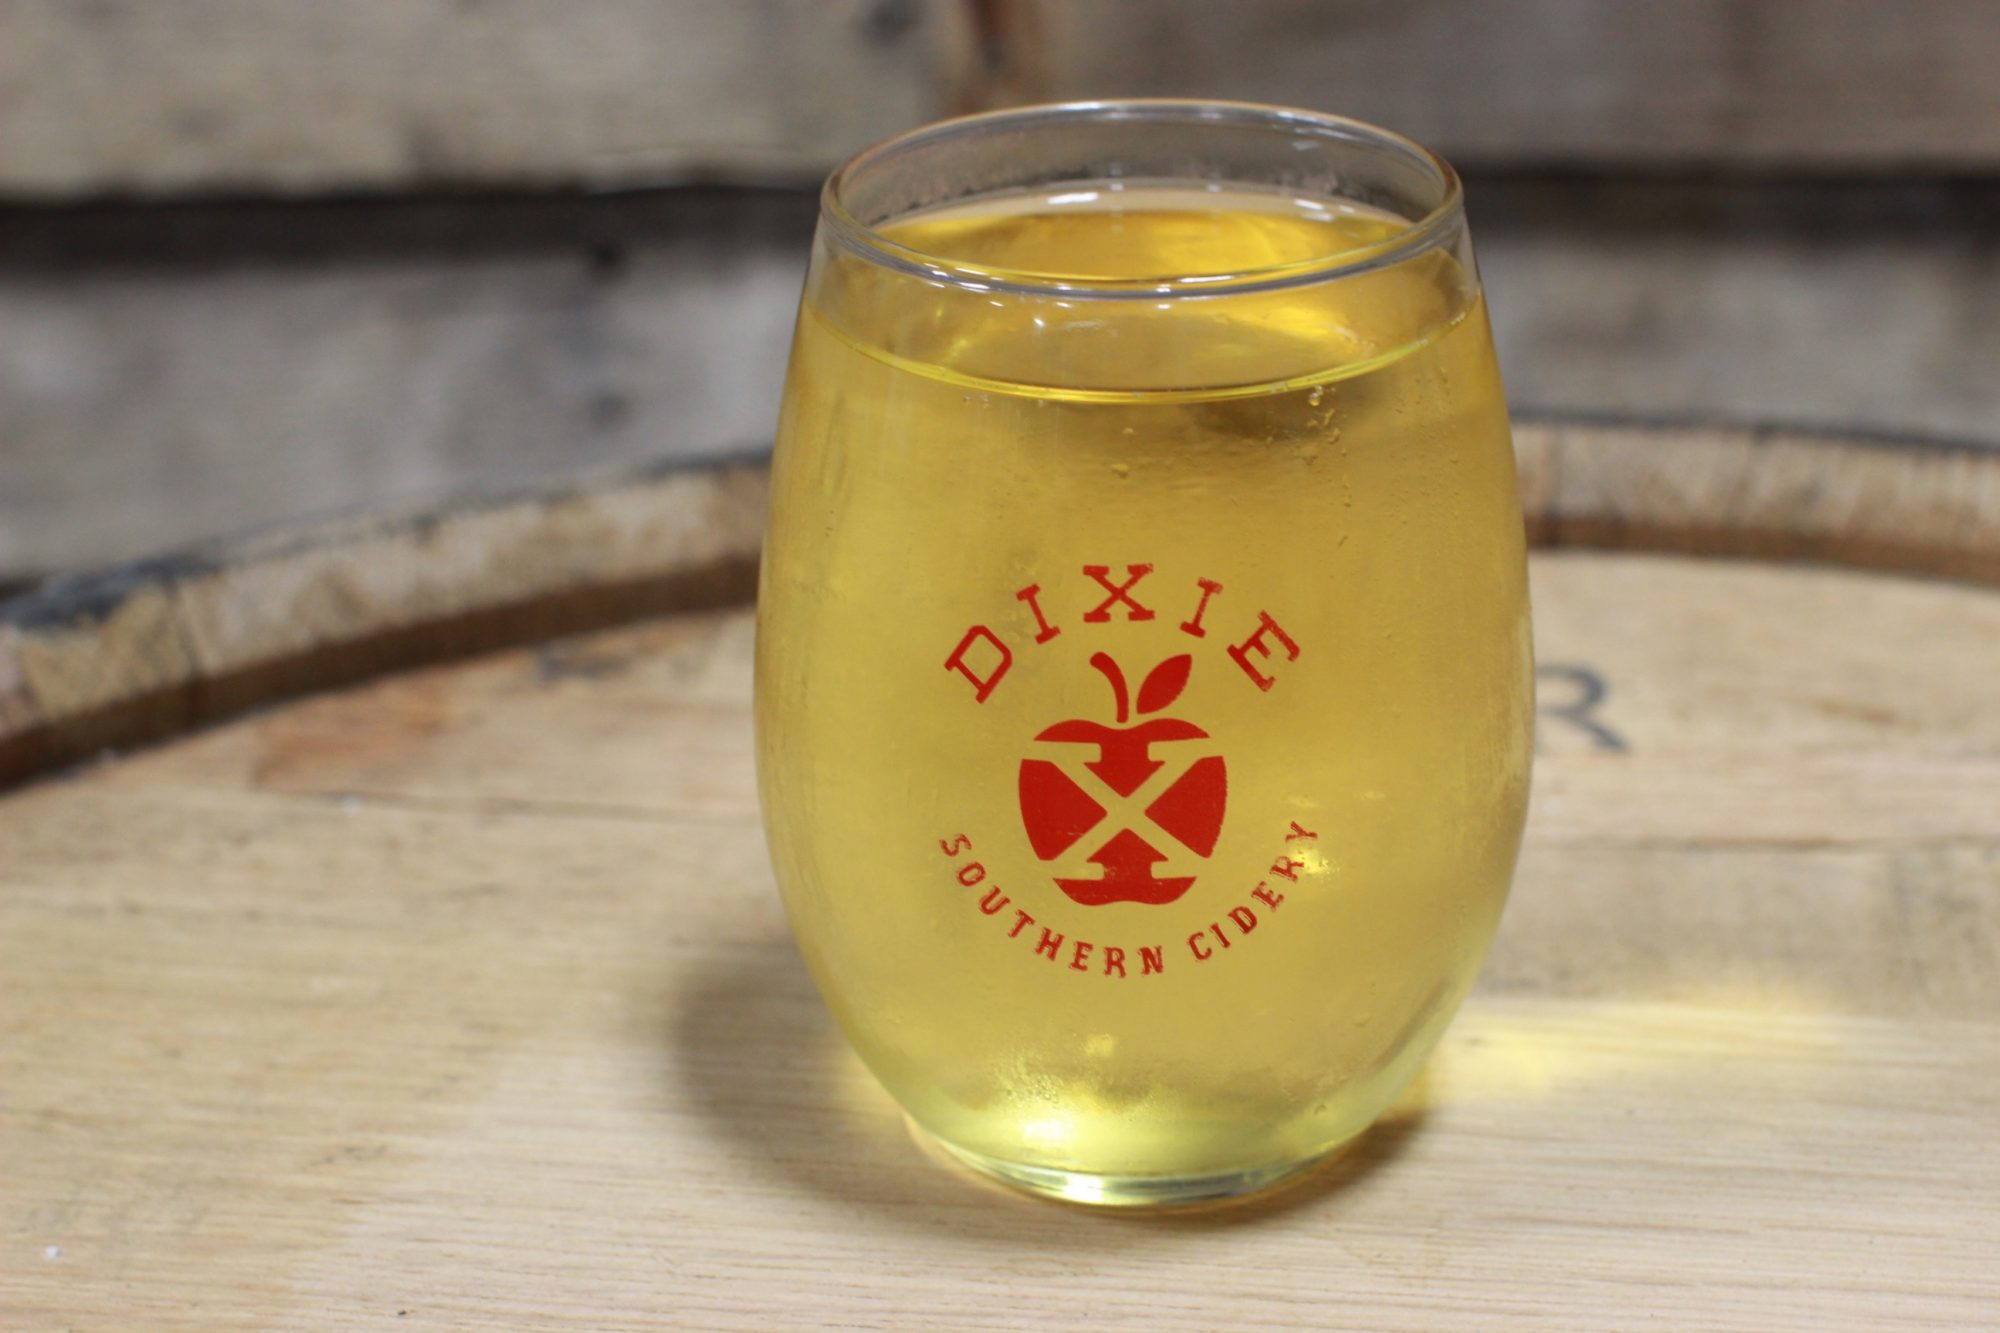 dixie-southern-cidery-pint-glass-2.jpg